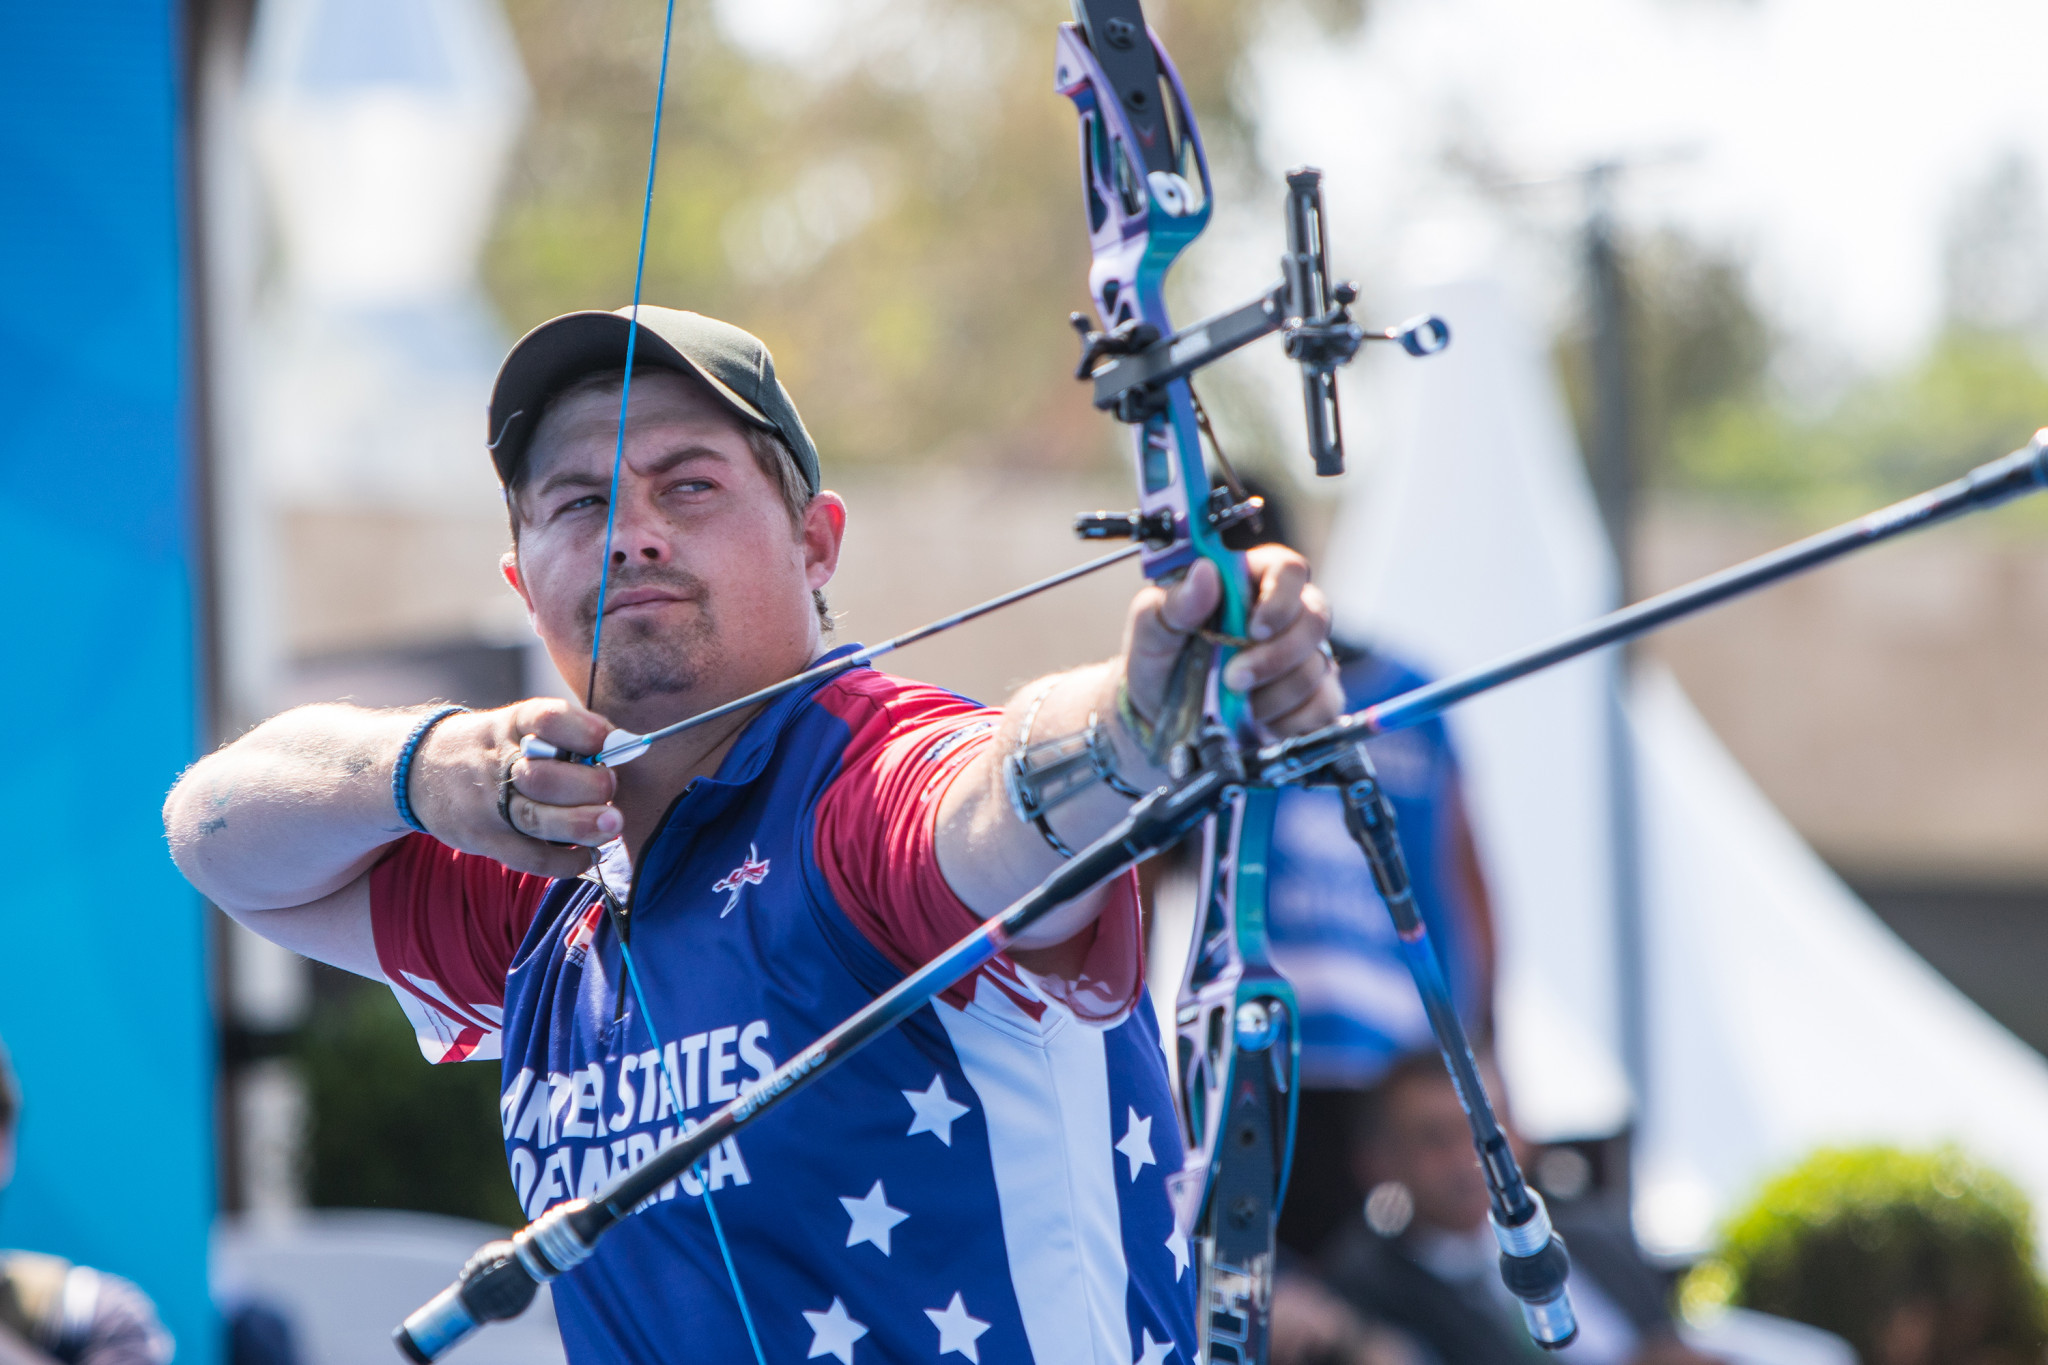 Guatemala City to host opening round of 2021 Archery World Cup